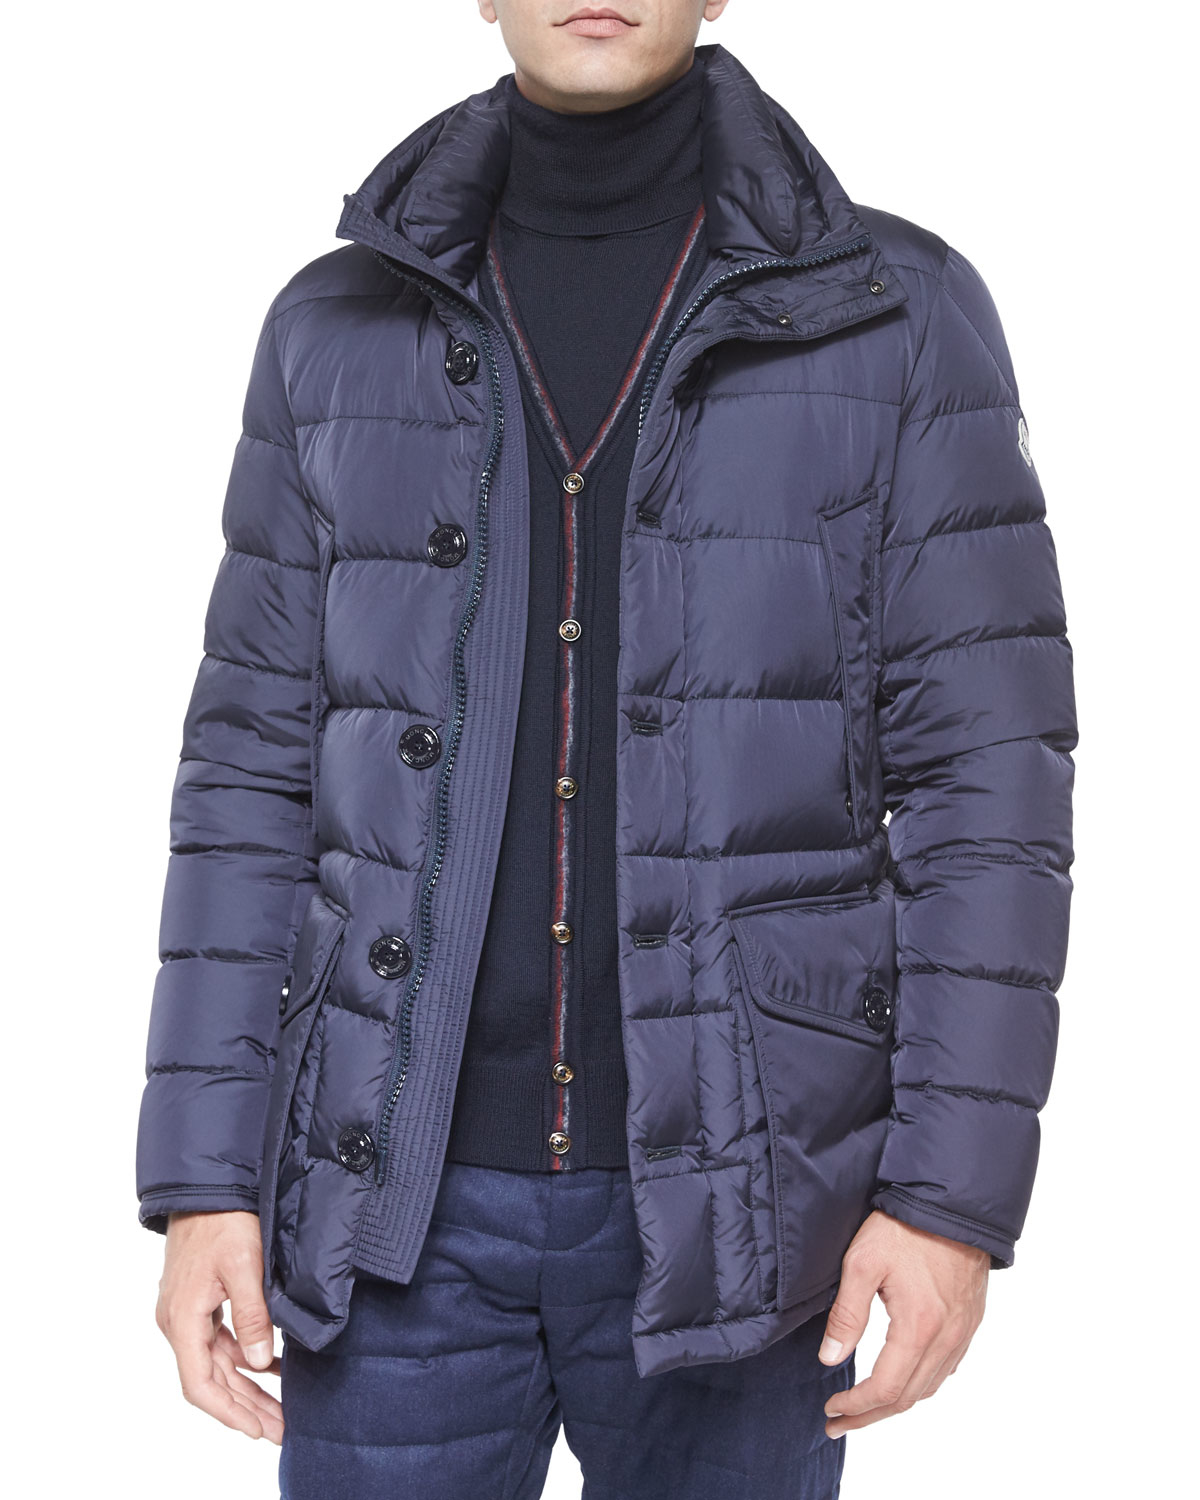 moncler puffer jacket navy blue